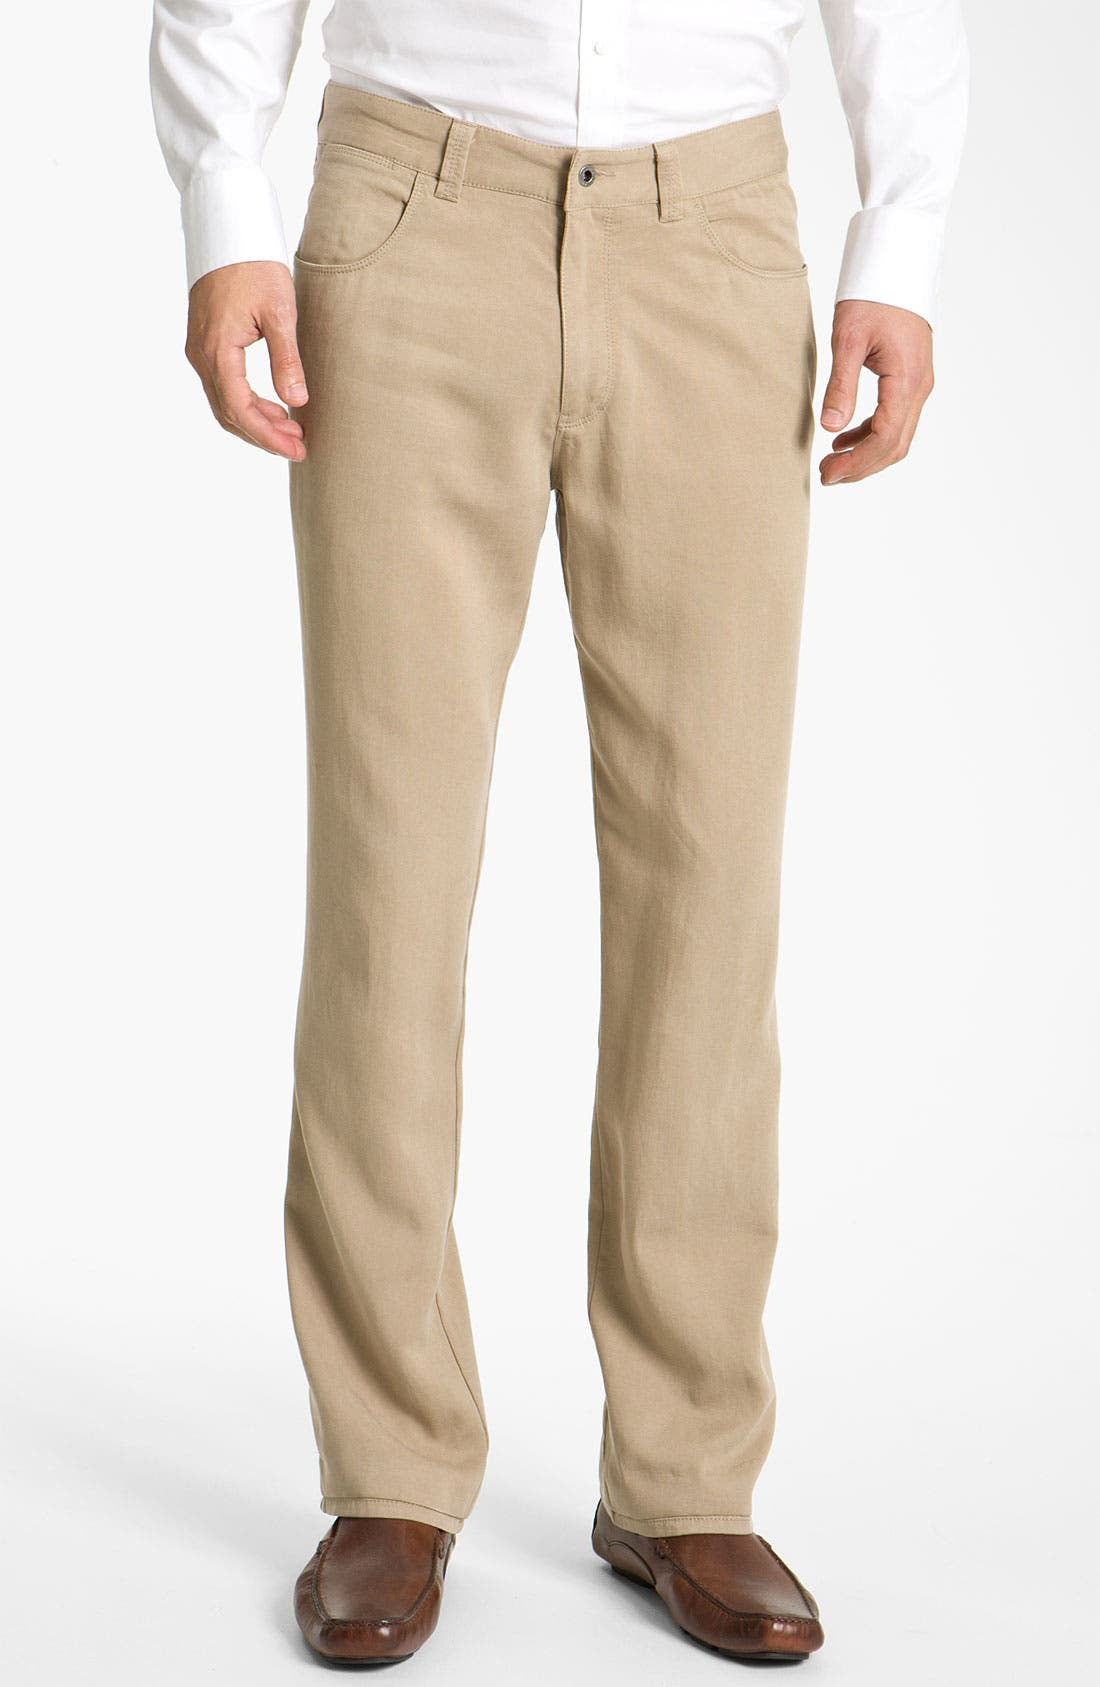 Alternate Image 1 Selected - Tommy Bahama 'Bali Five' Relaxed Straight Leg Pants